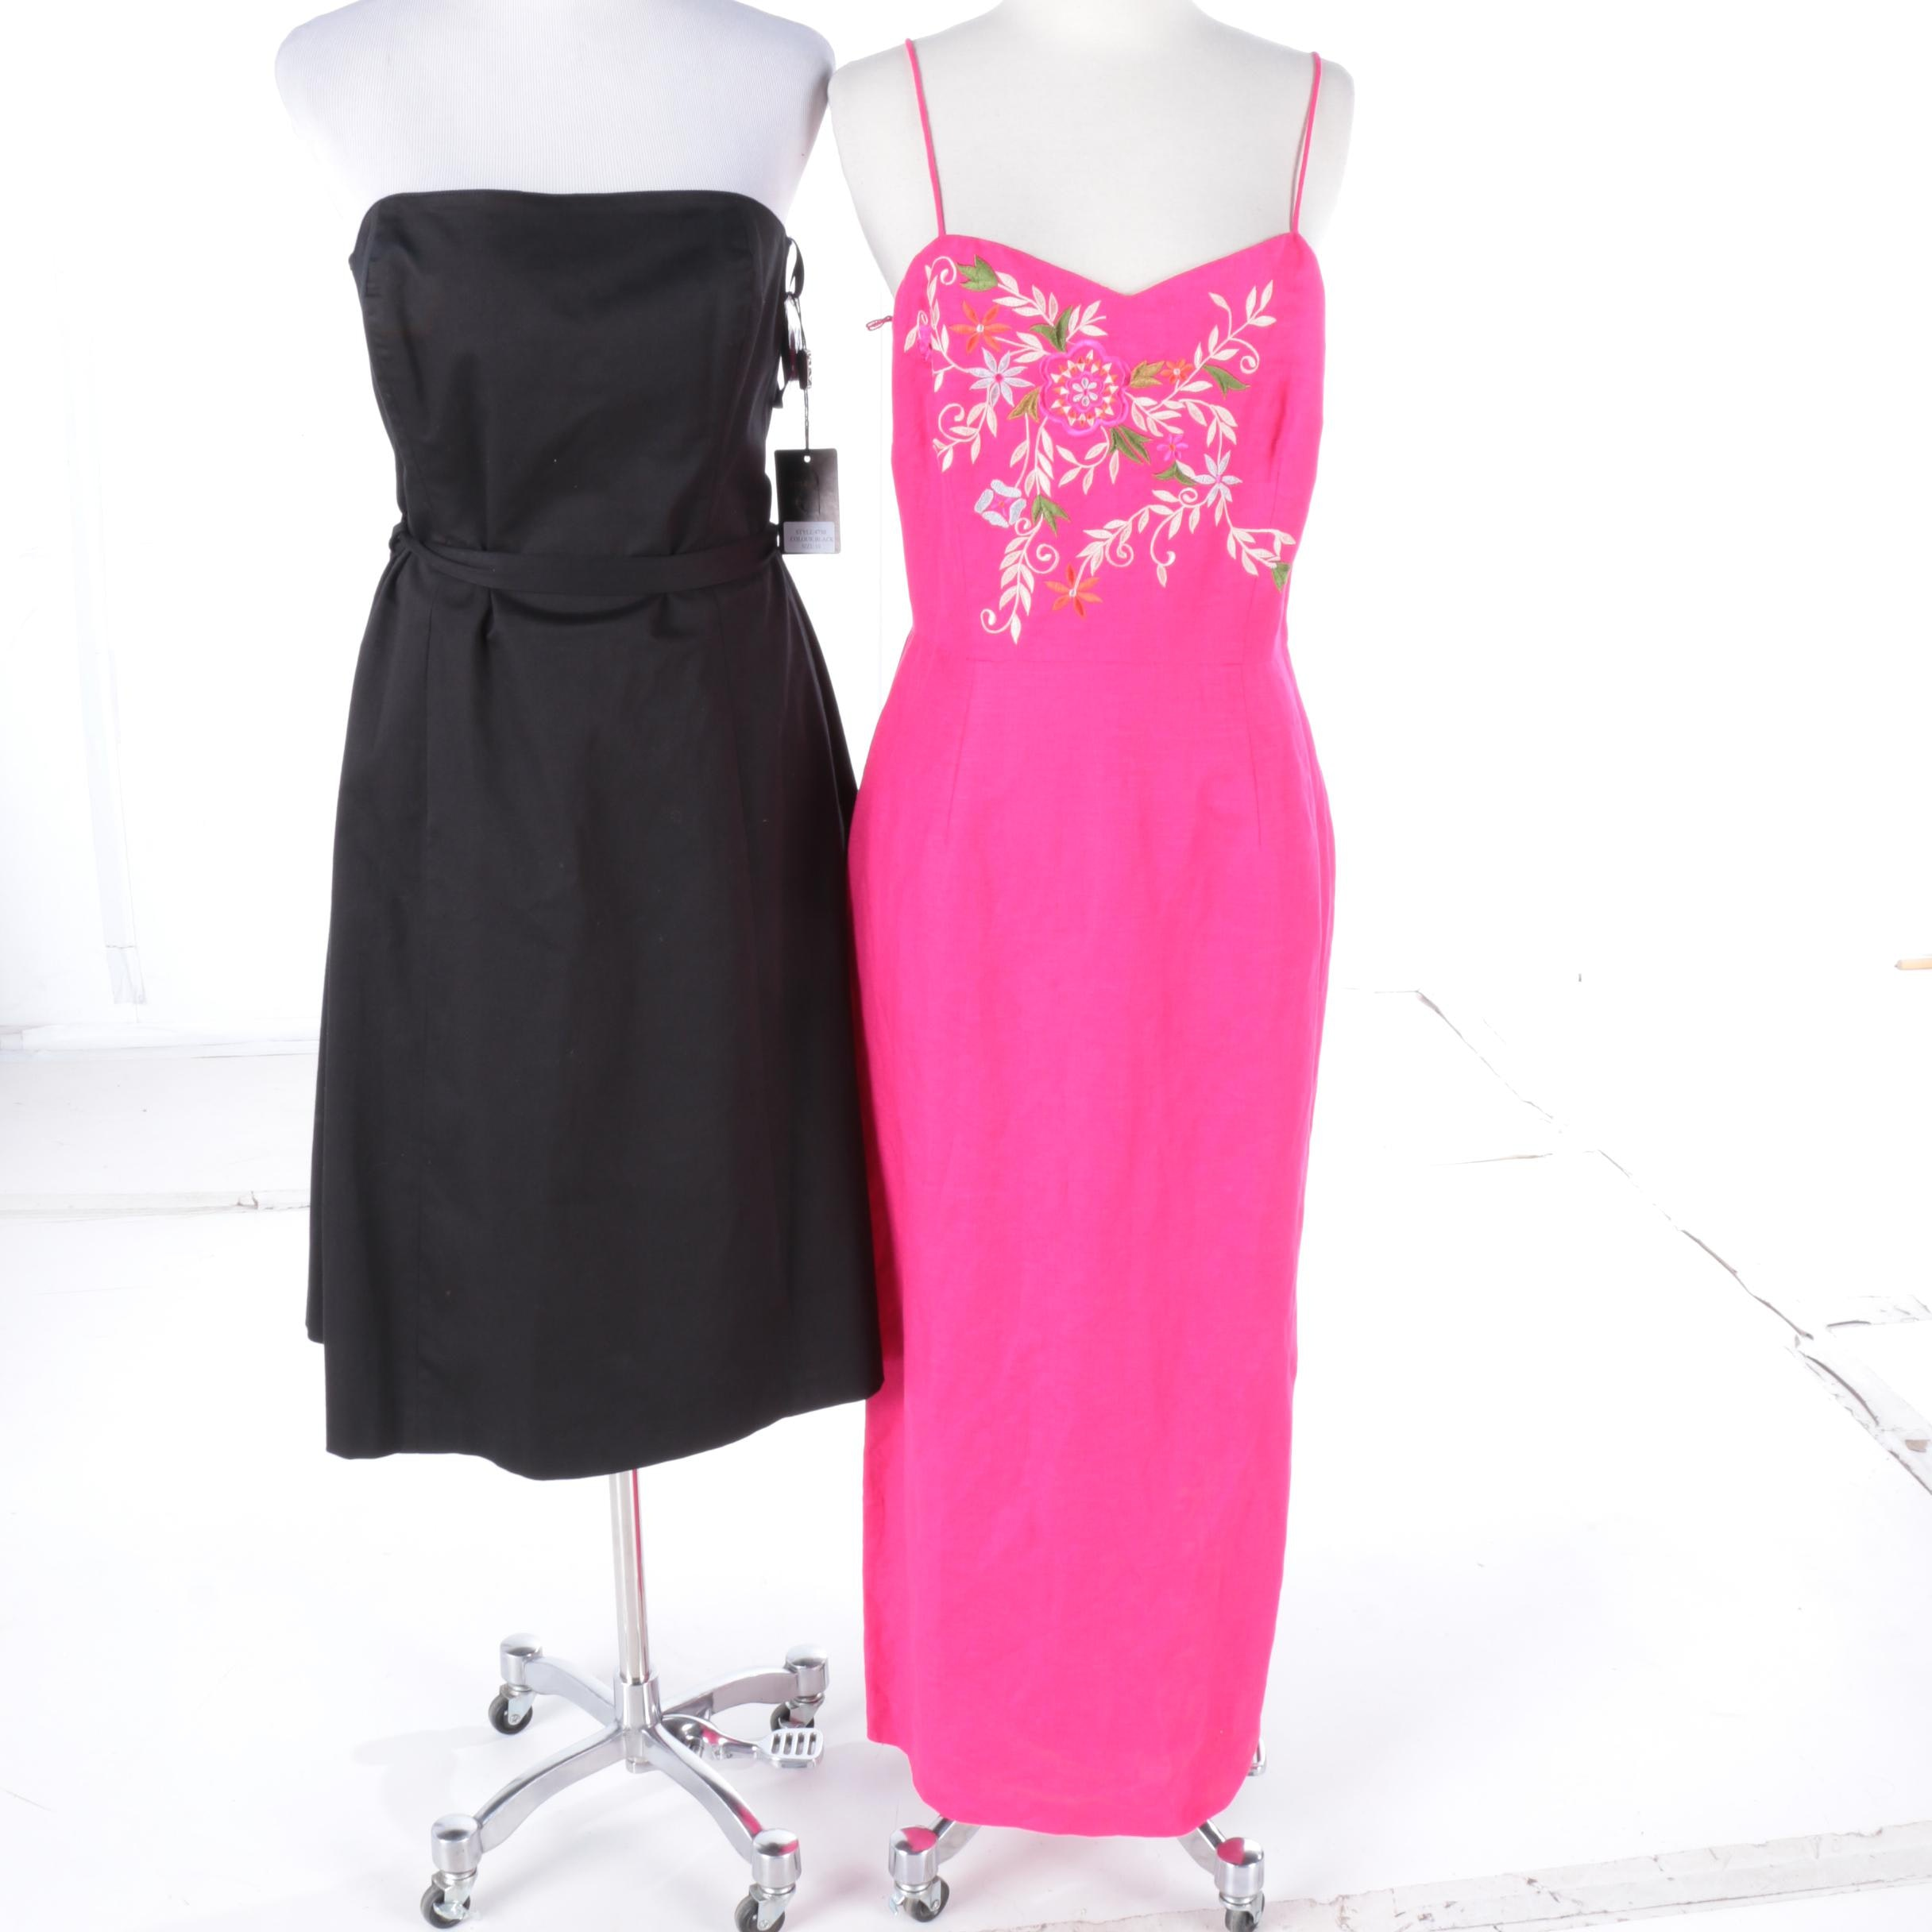 Women's Dresses Including Donna Morgan and SEA Toronto